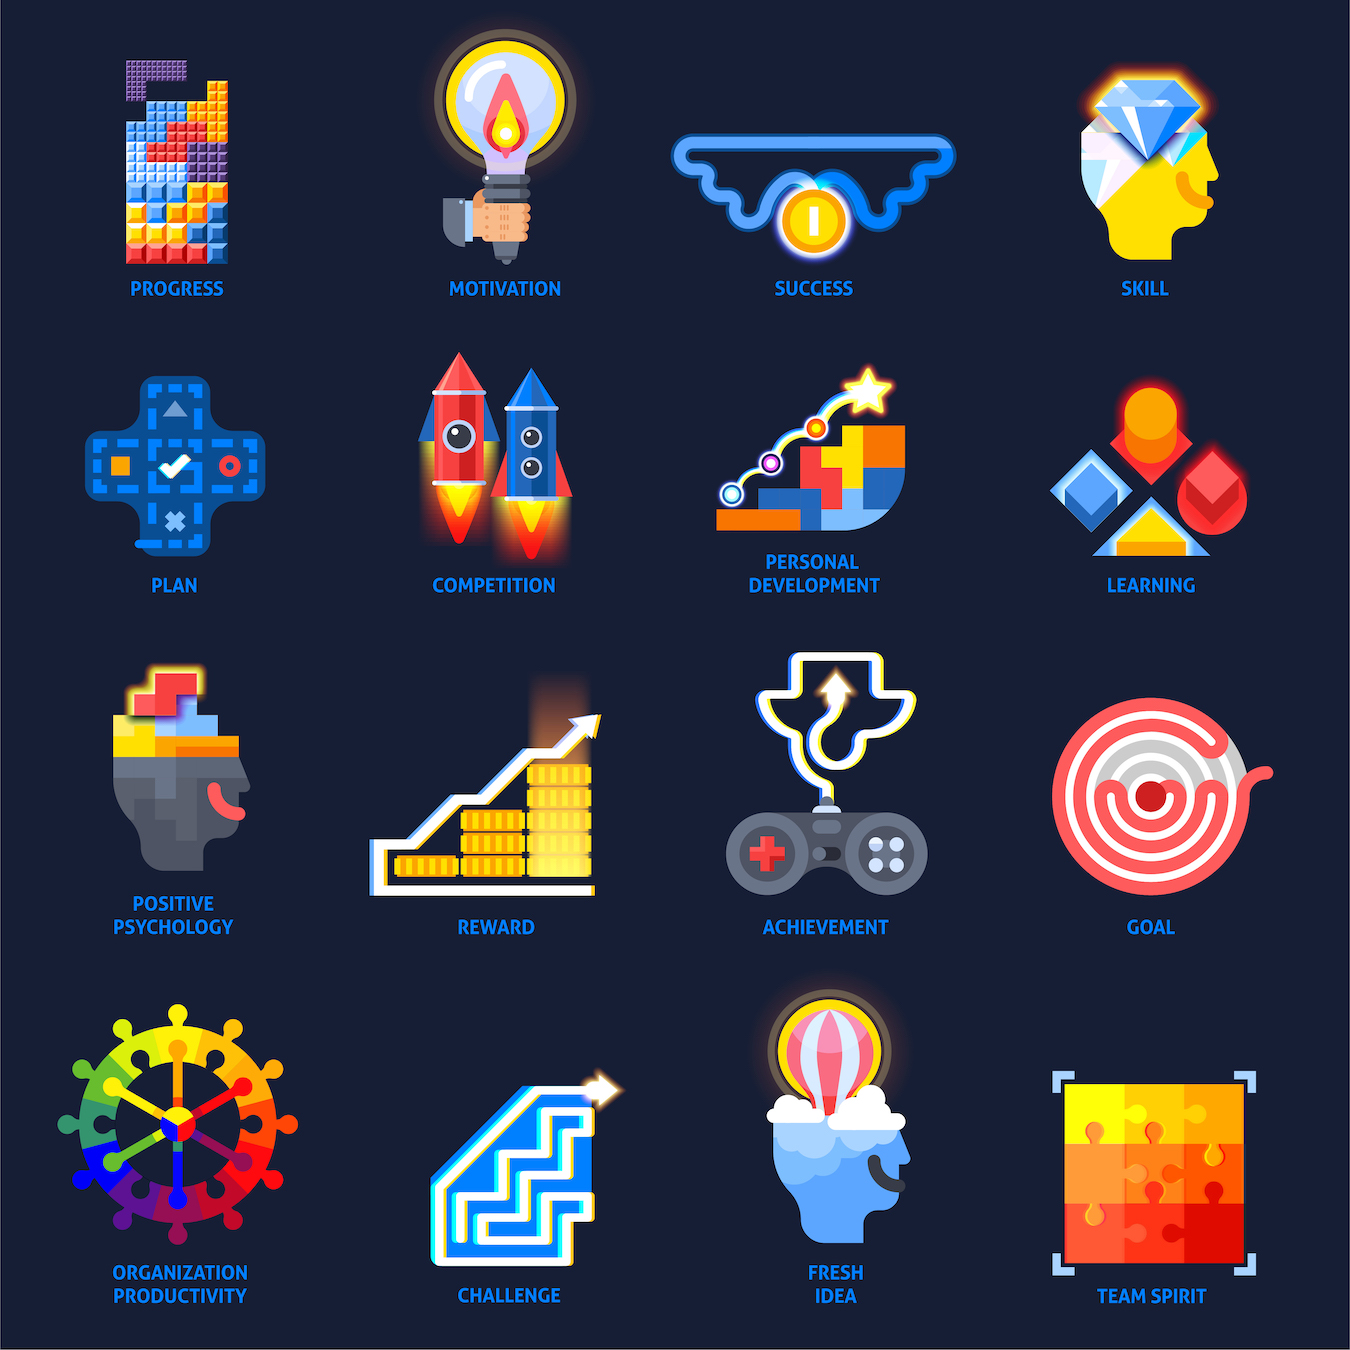 Gamification: How to Increase Your Learning Engagement